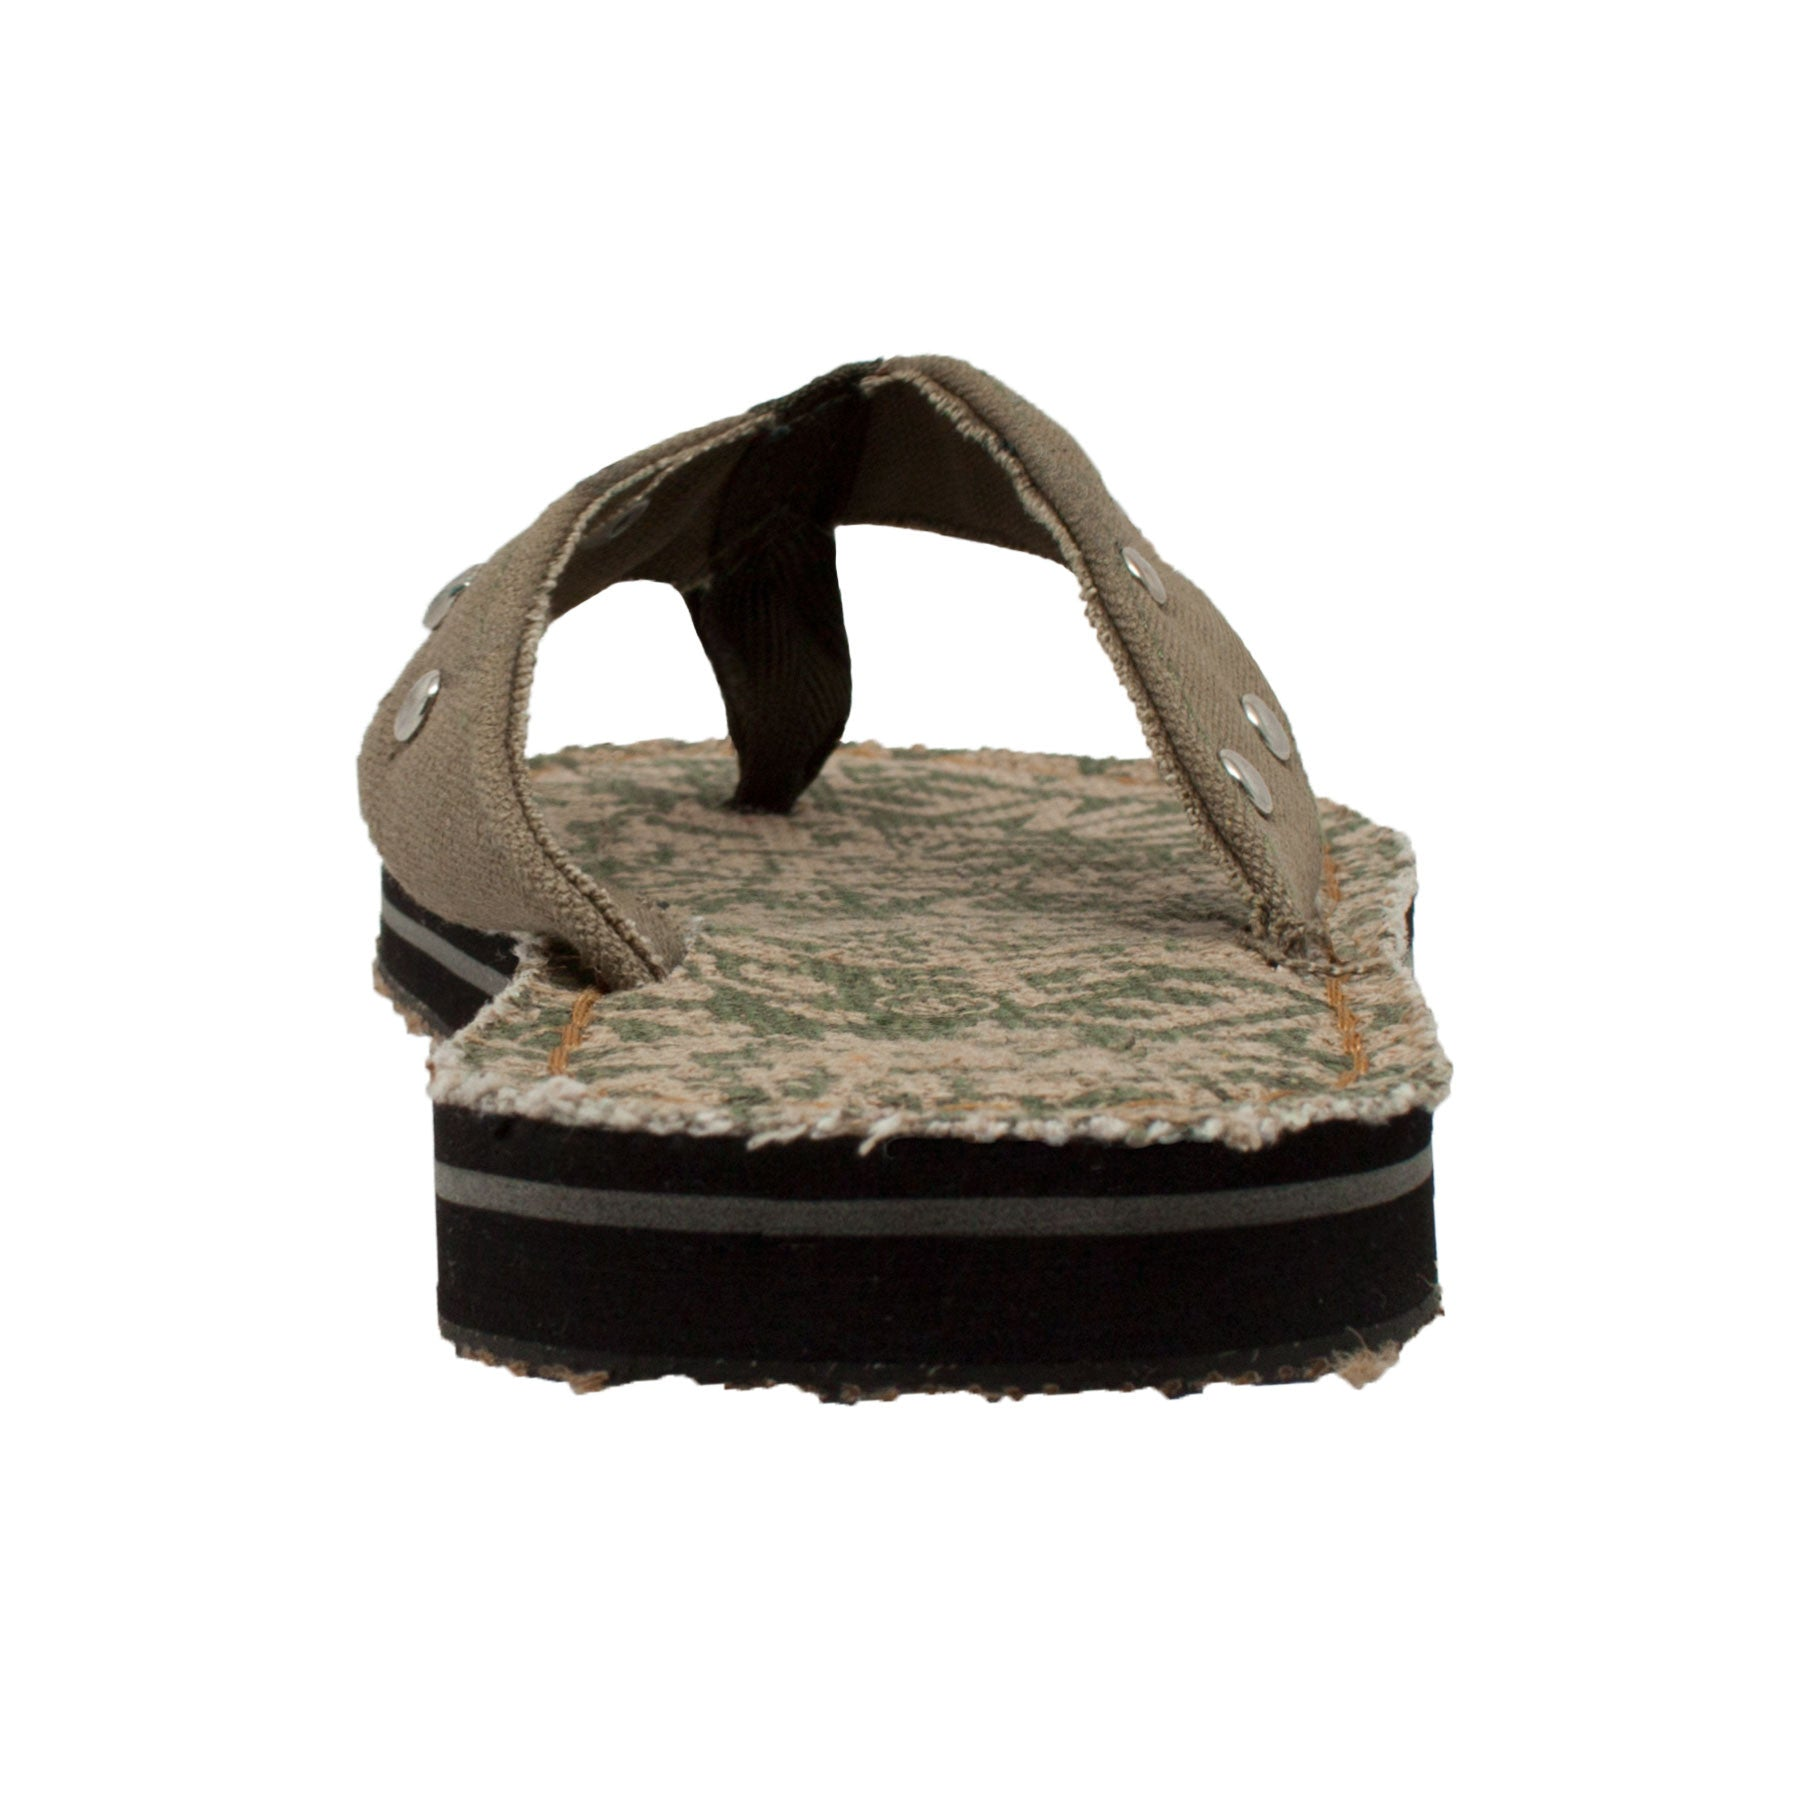 Men's Thong Sandal Olive - 9452 - Shop Genuine Leather men & women's boots online | AdTecFootWear